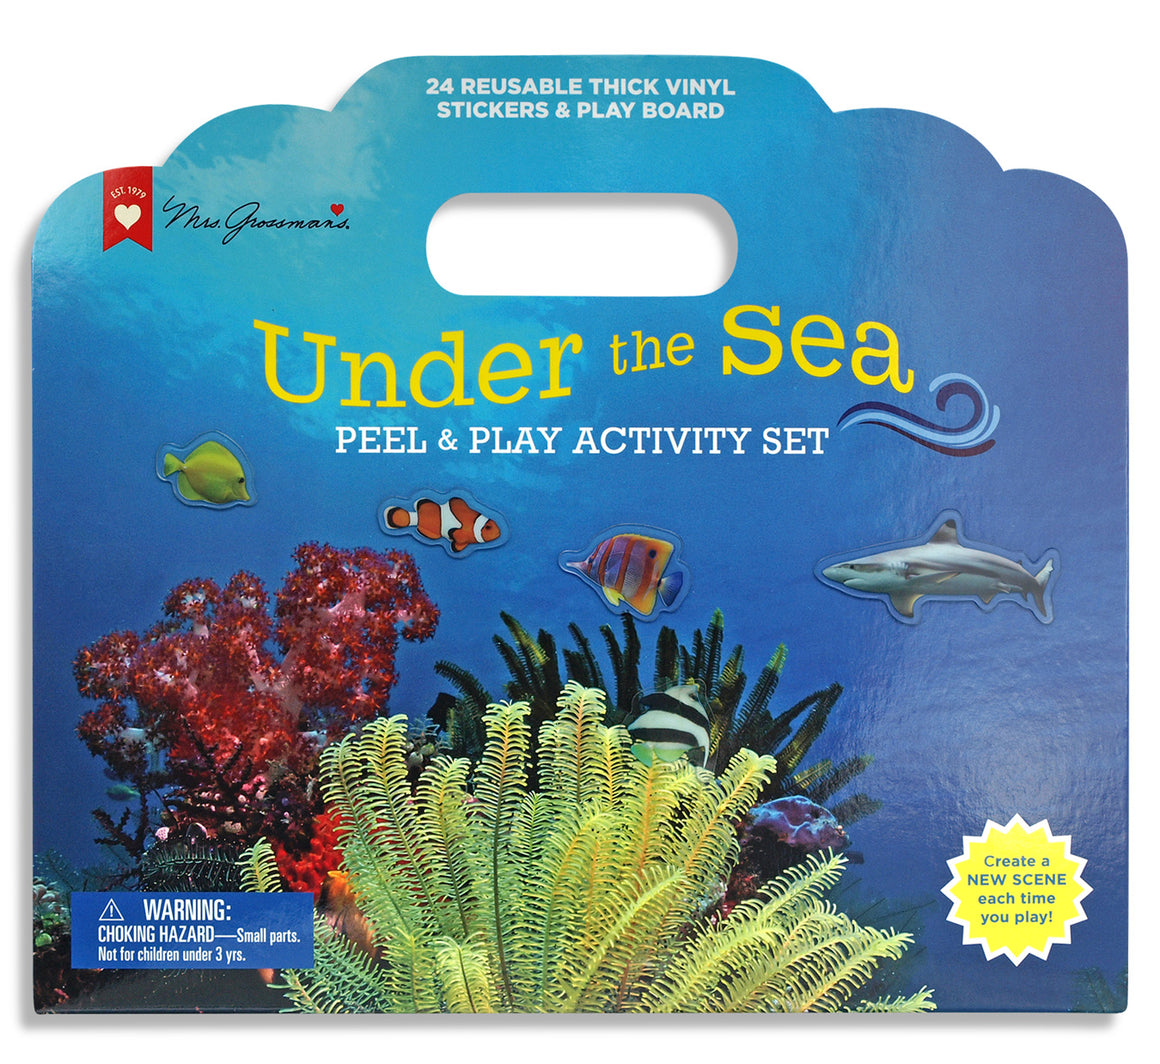 Under the Sea Peel & Play Sticker Activity Set